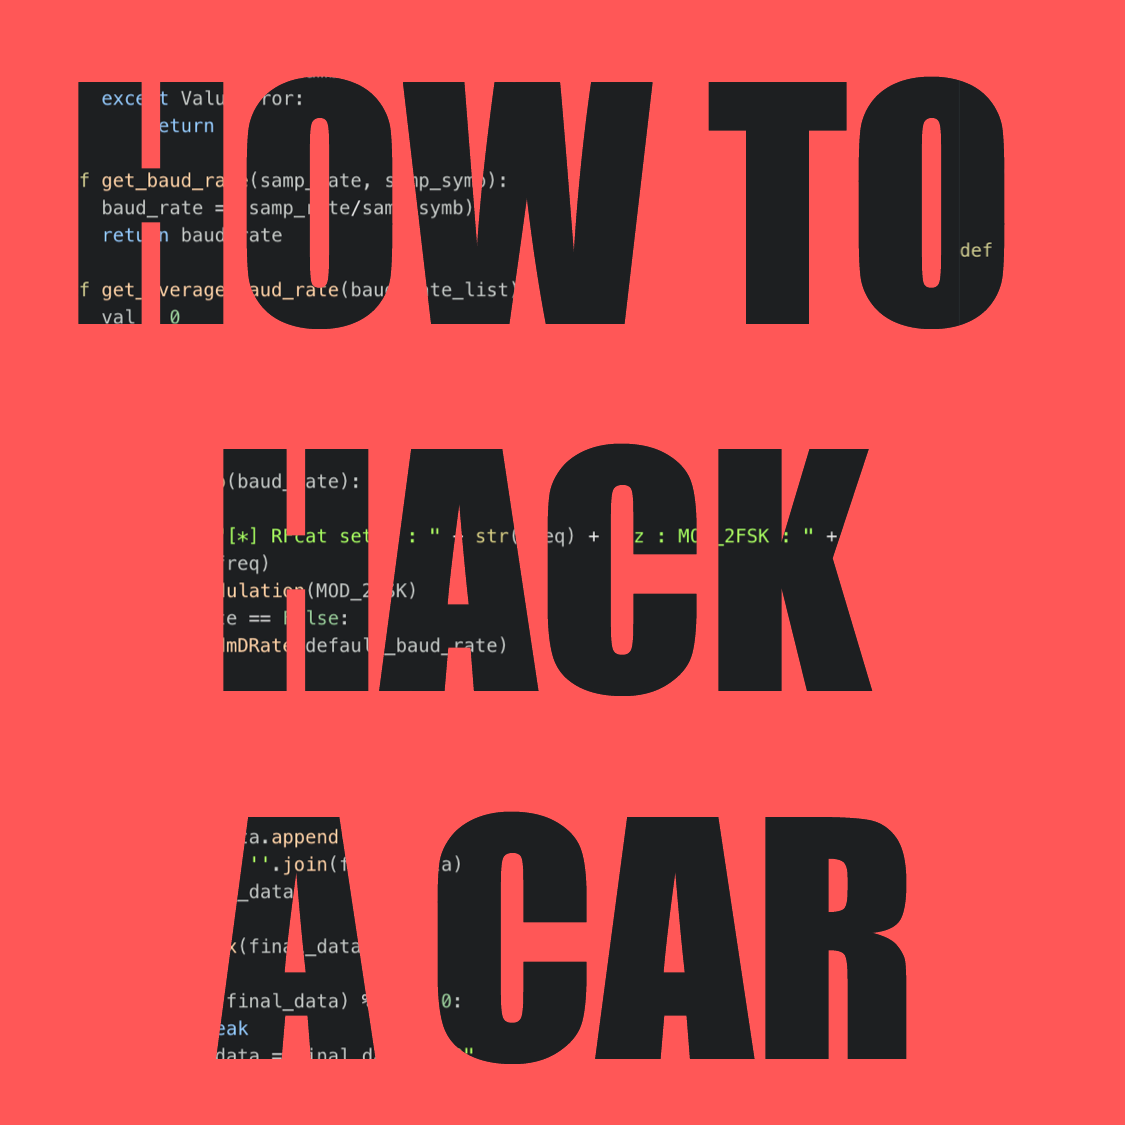 Hacking a Car's Key Fob with a Rolljam Attack - Hackster Blog